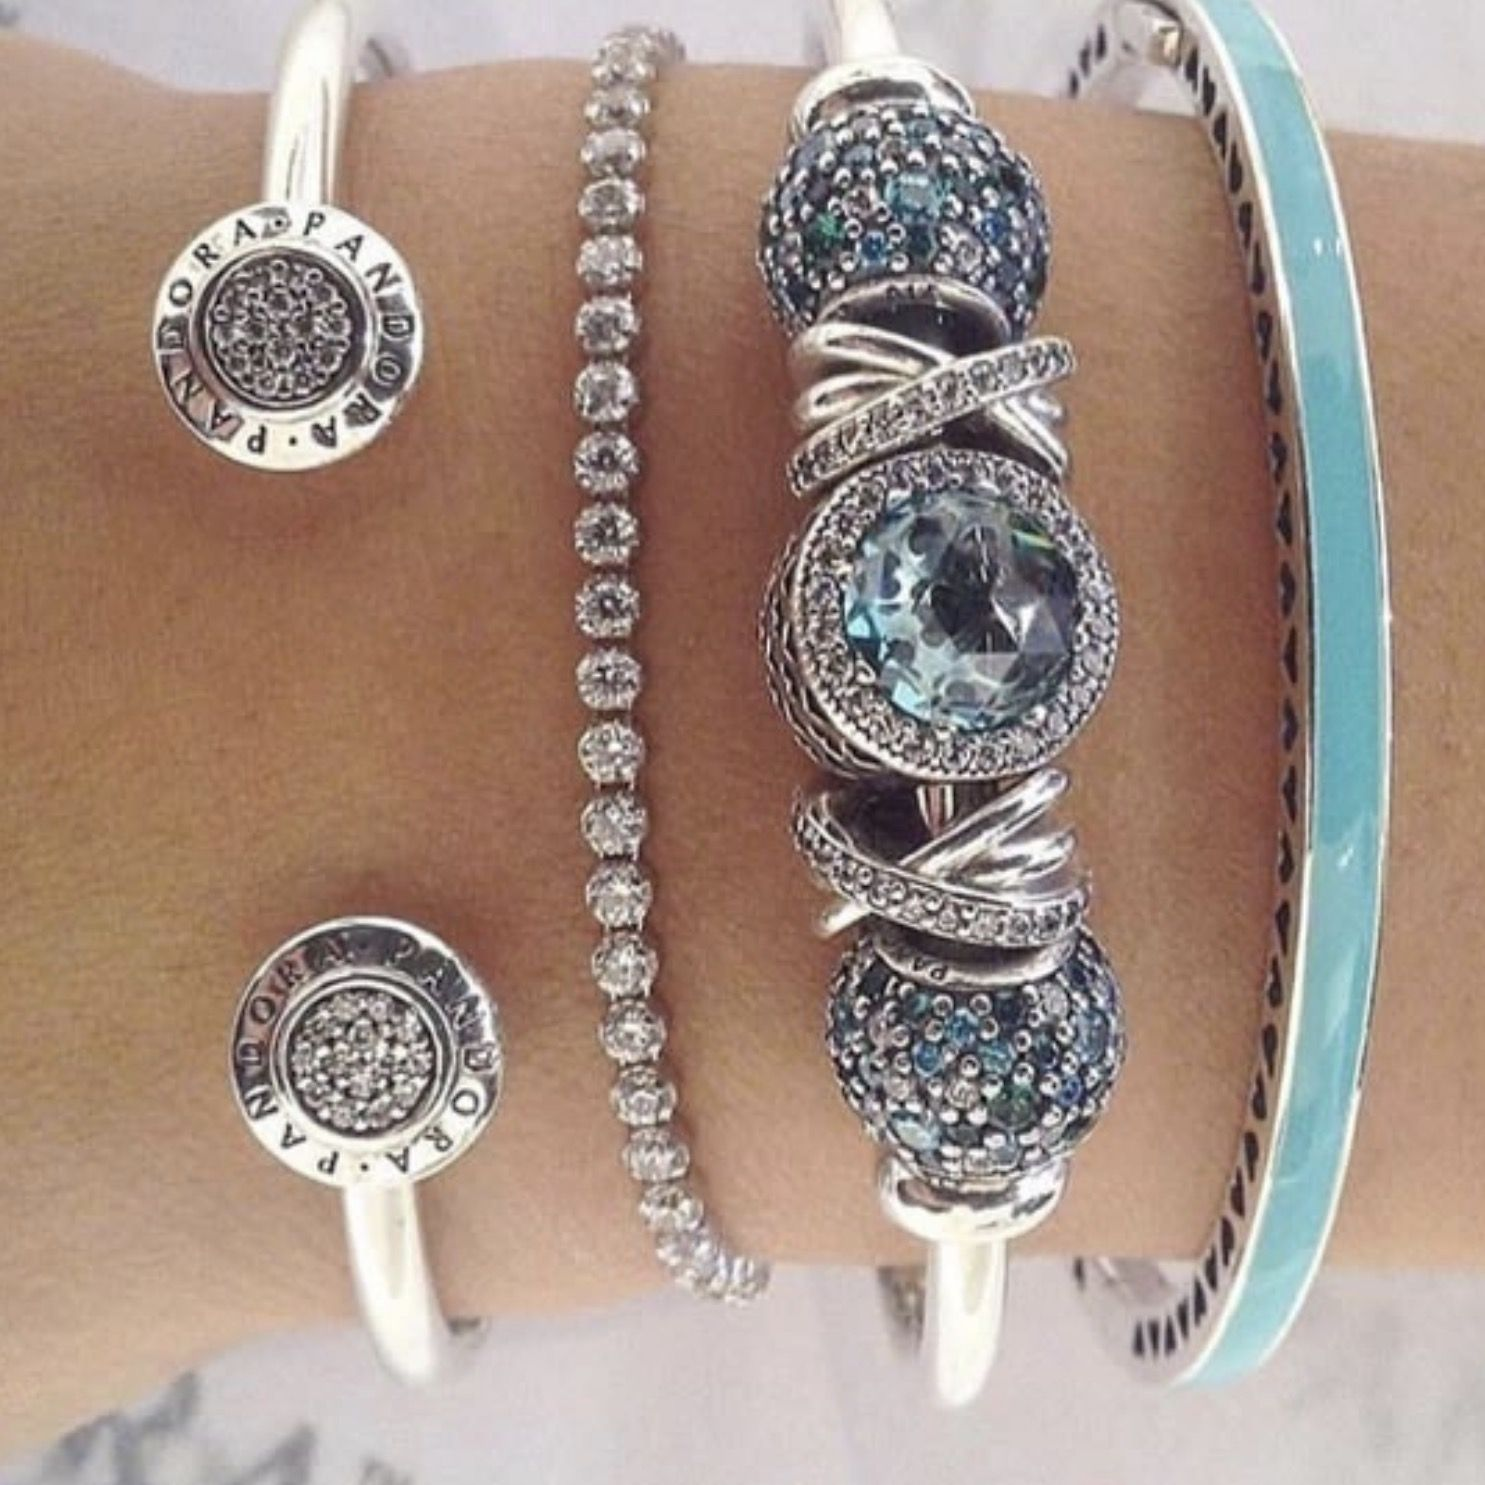 pinterest my bracelet haul pin catch pandora dream charms bangles travel themed bangle